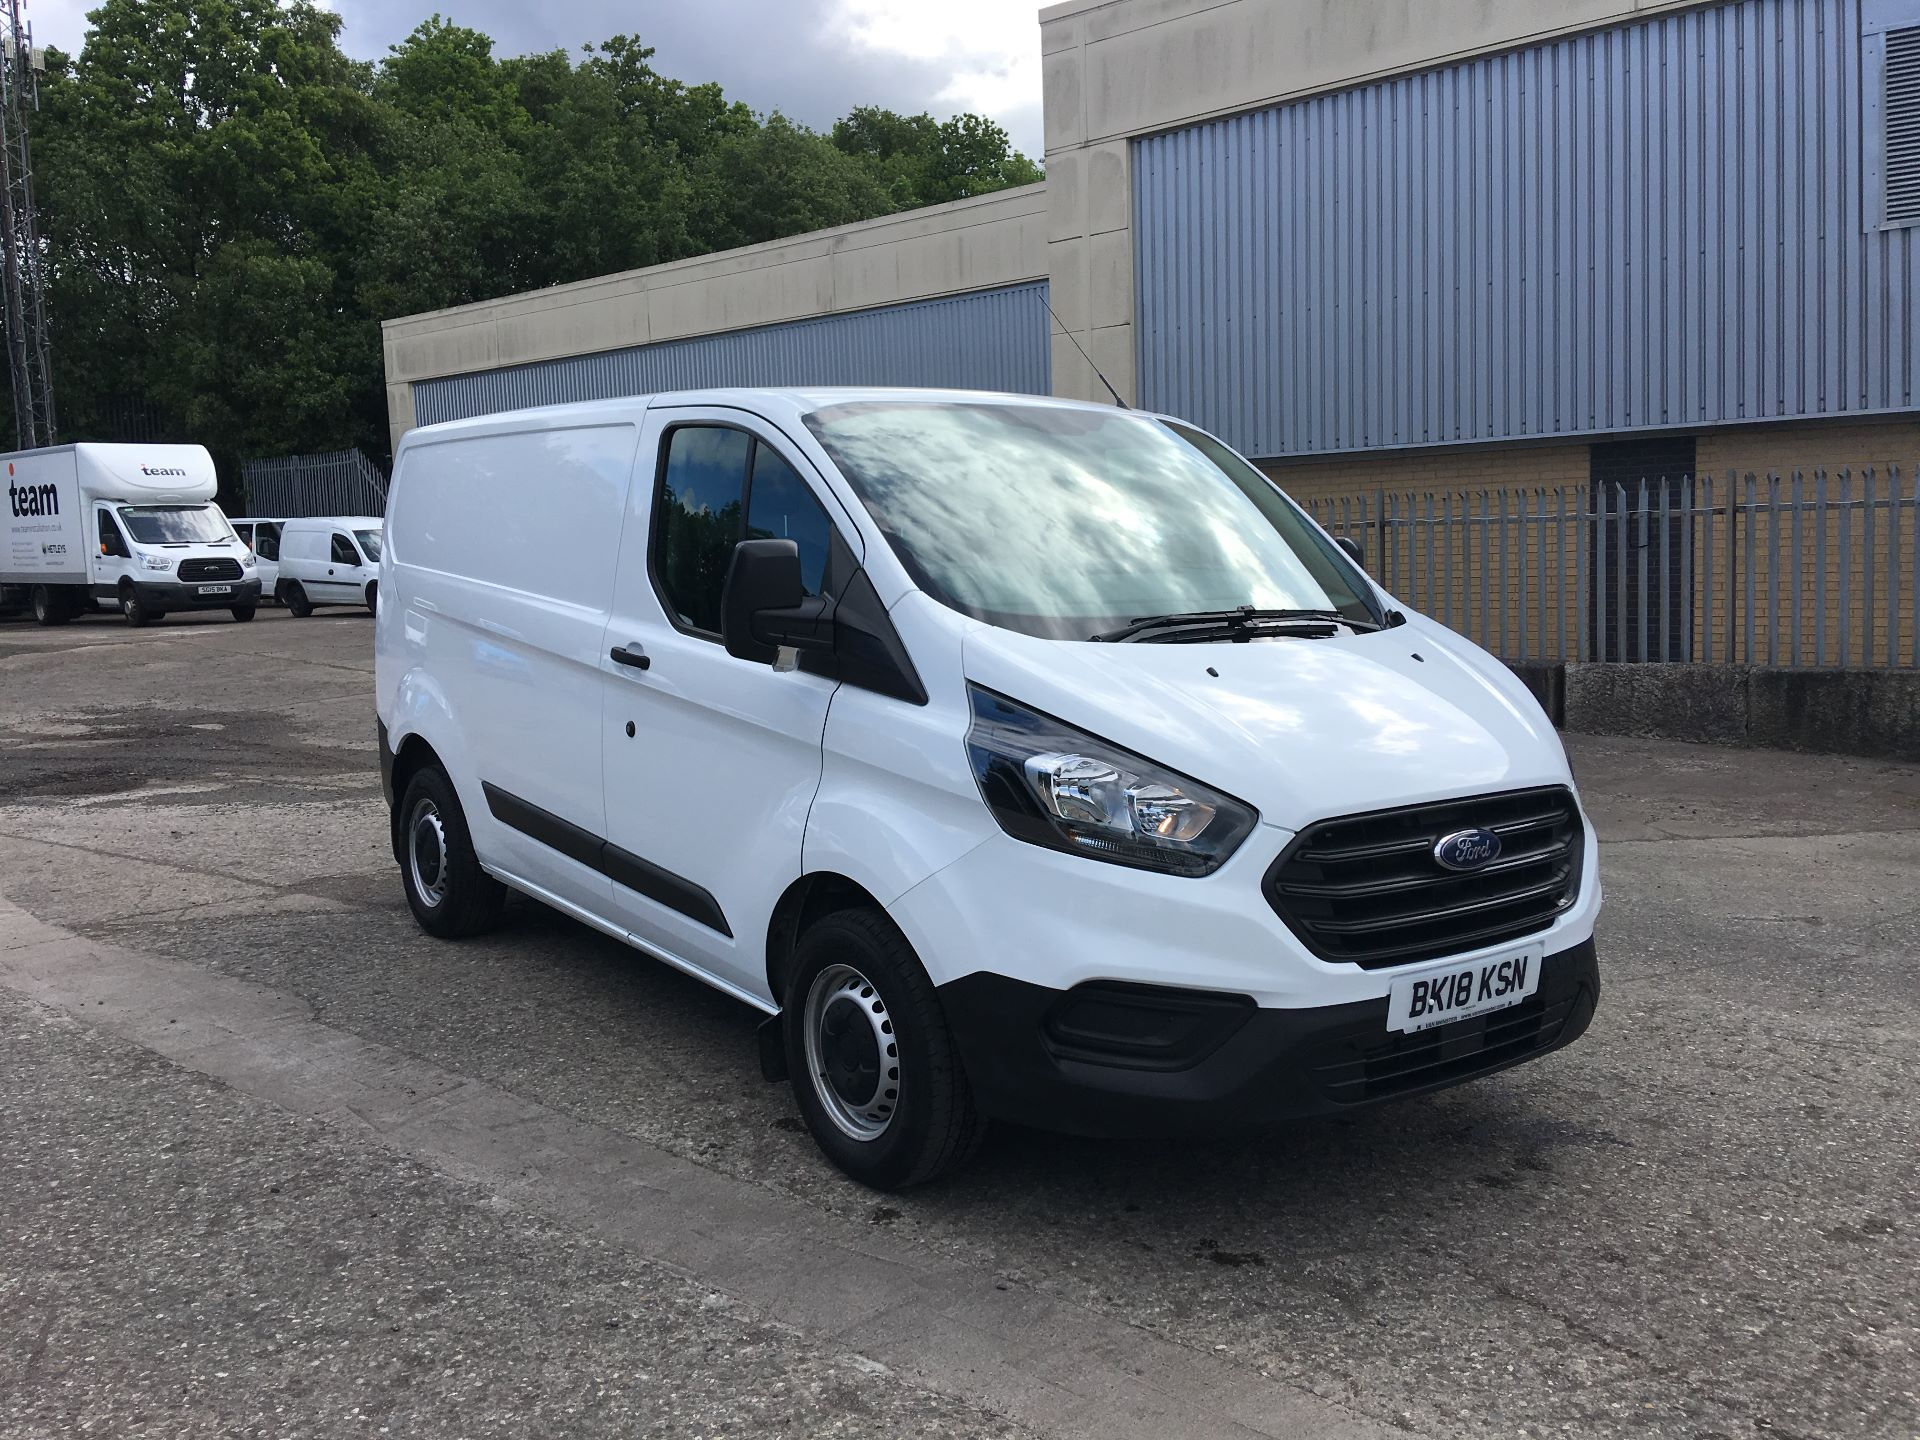 2018 Ford Transit Custom 300 L1 DIESEL FWD 2.0 ECOBLUE 105PS LOW ROOF EURO 6 (BK18KSN)